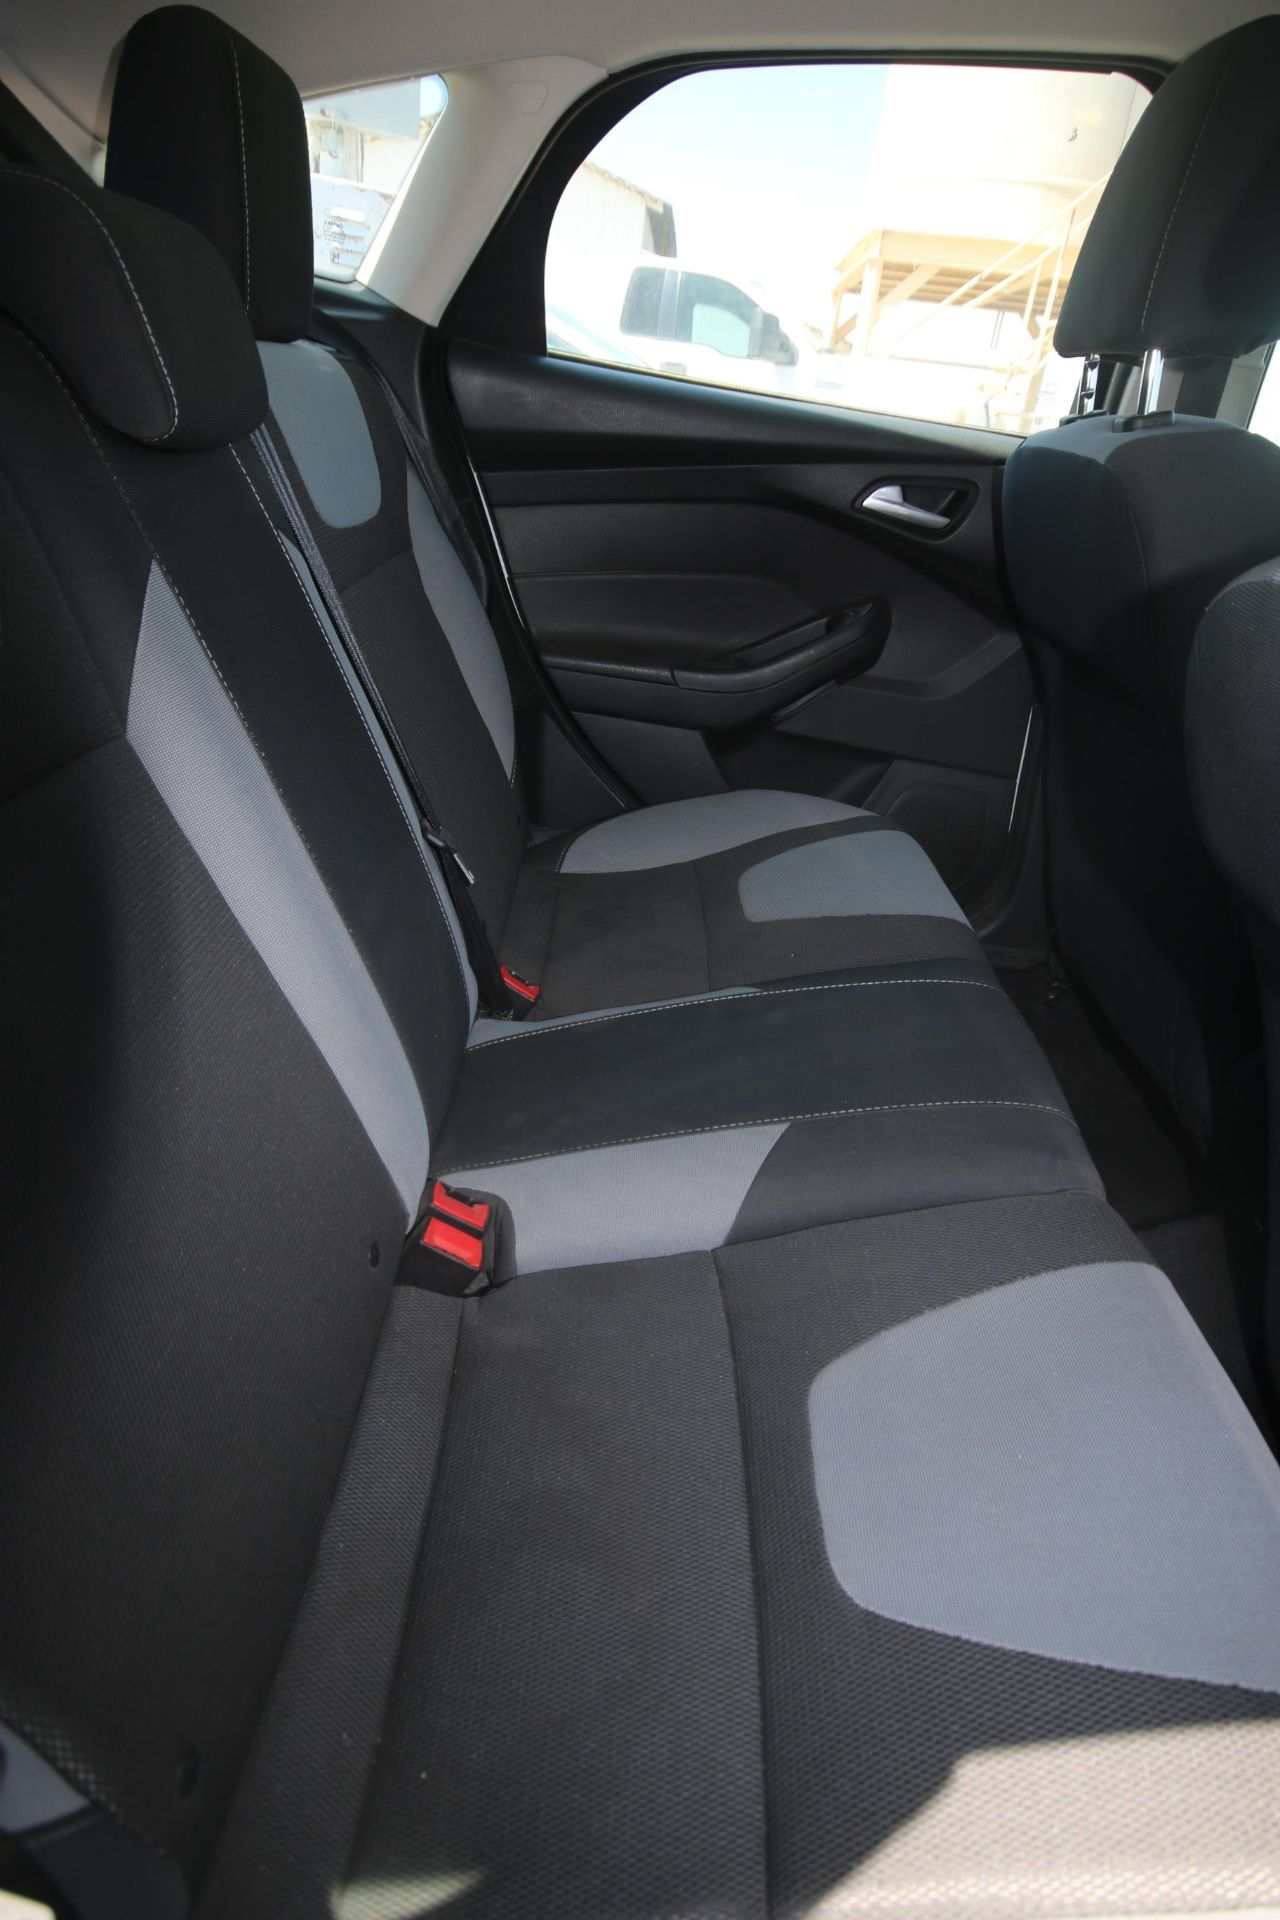 2012 White Ford Focus SE Hatchback 4D, VIN #: 1FAHP3K27CL423326, with 116,017 Miles, with 4-Doors, - Image 6 of 26